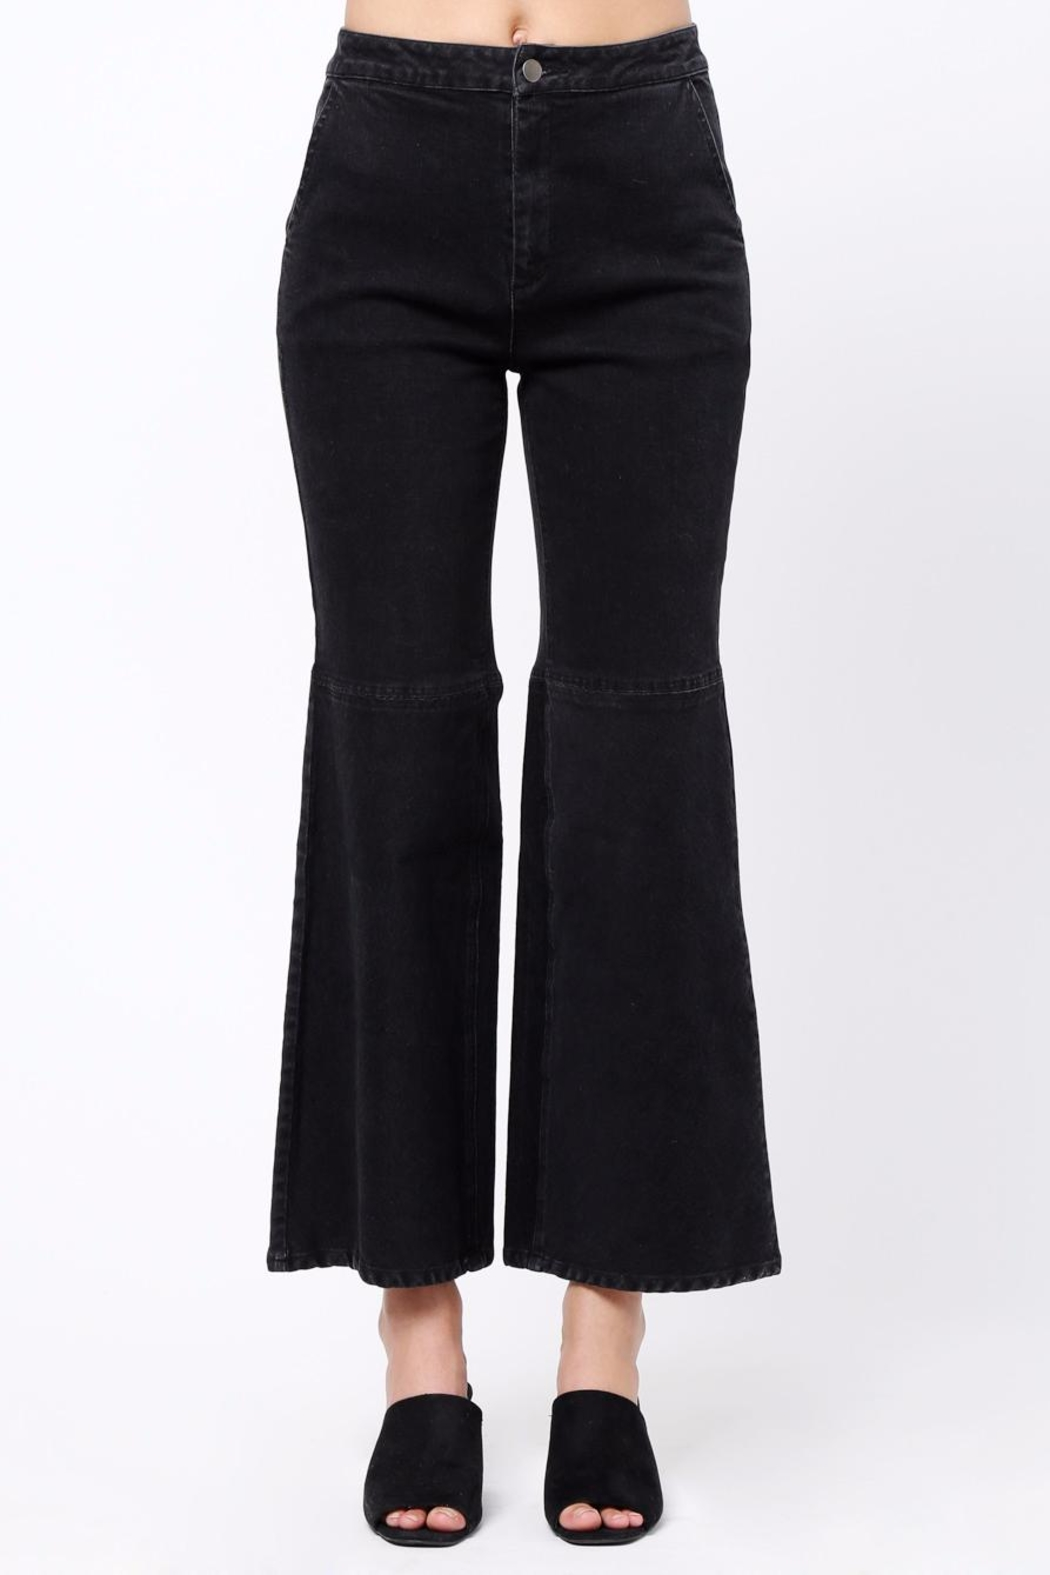 Movint Flared Hem Detail Pants - Main Image